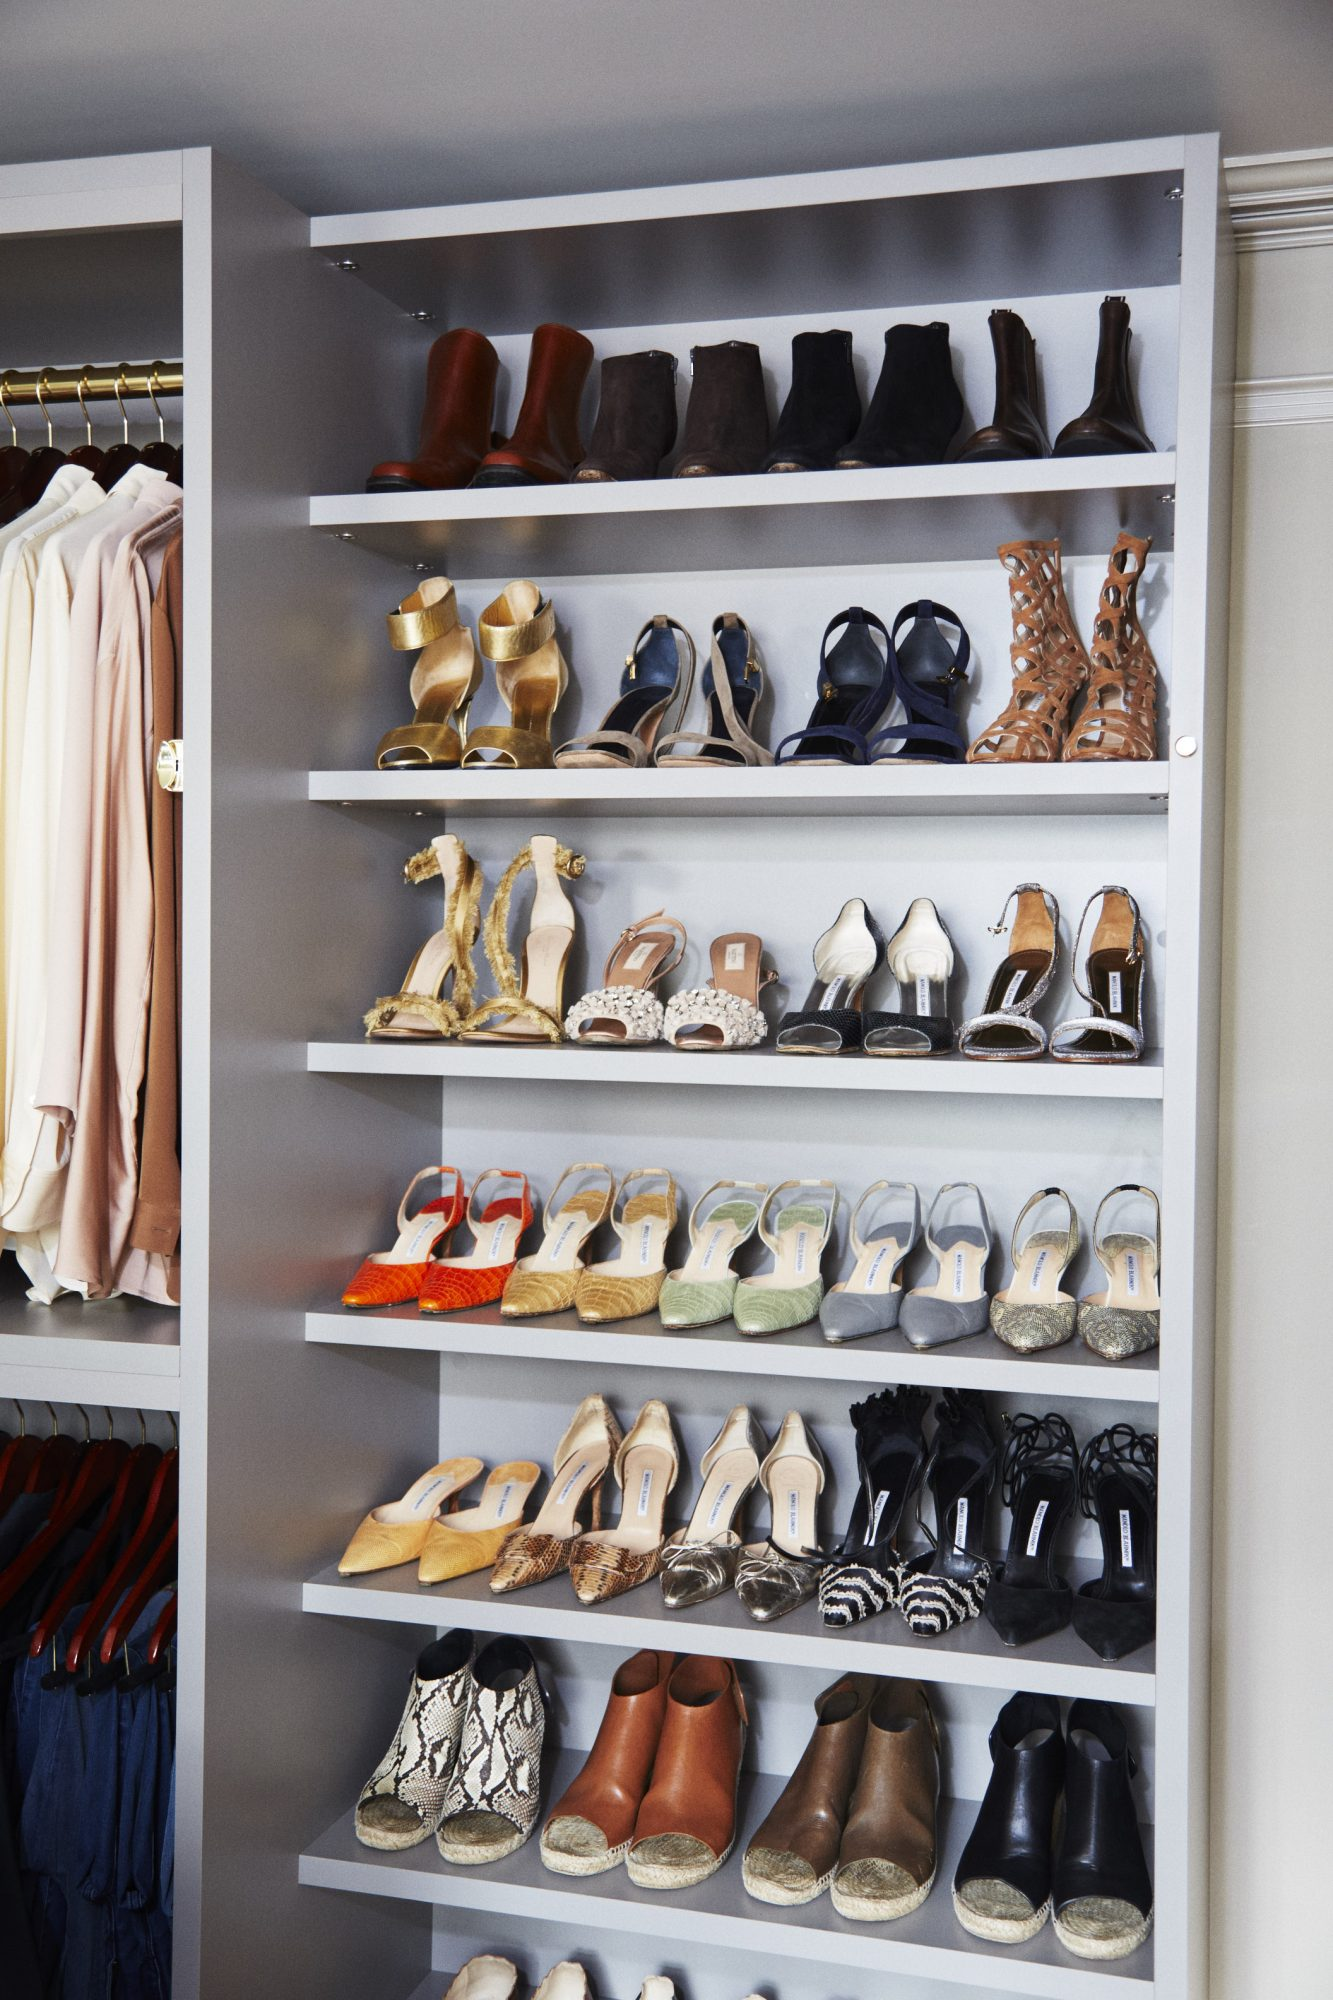 See Inside Martha Stewart's Meticulous (and Massive!) Walk-in Closet msl-closet-12-19-17-mn-6487417-357